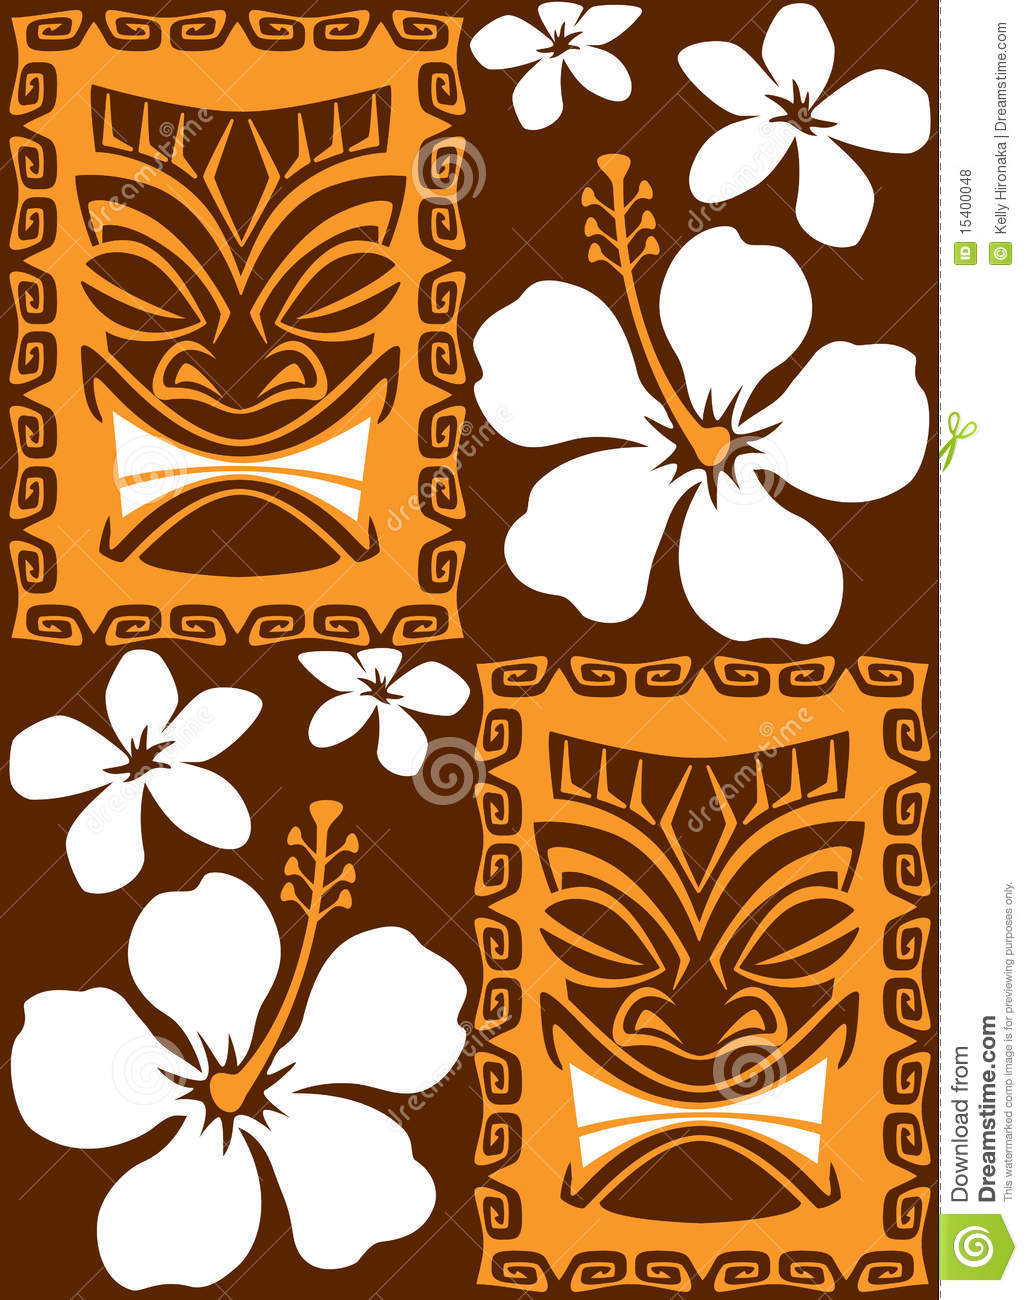 HD wallpapers mask designs templates